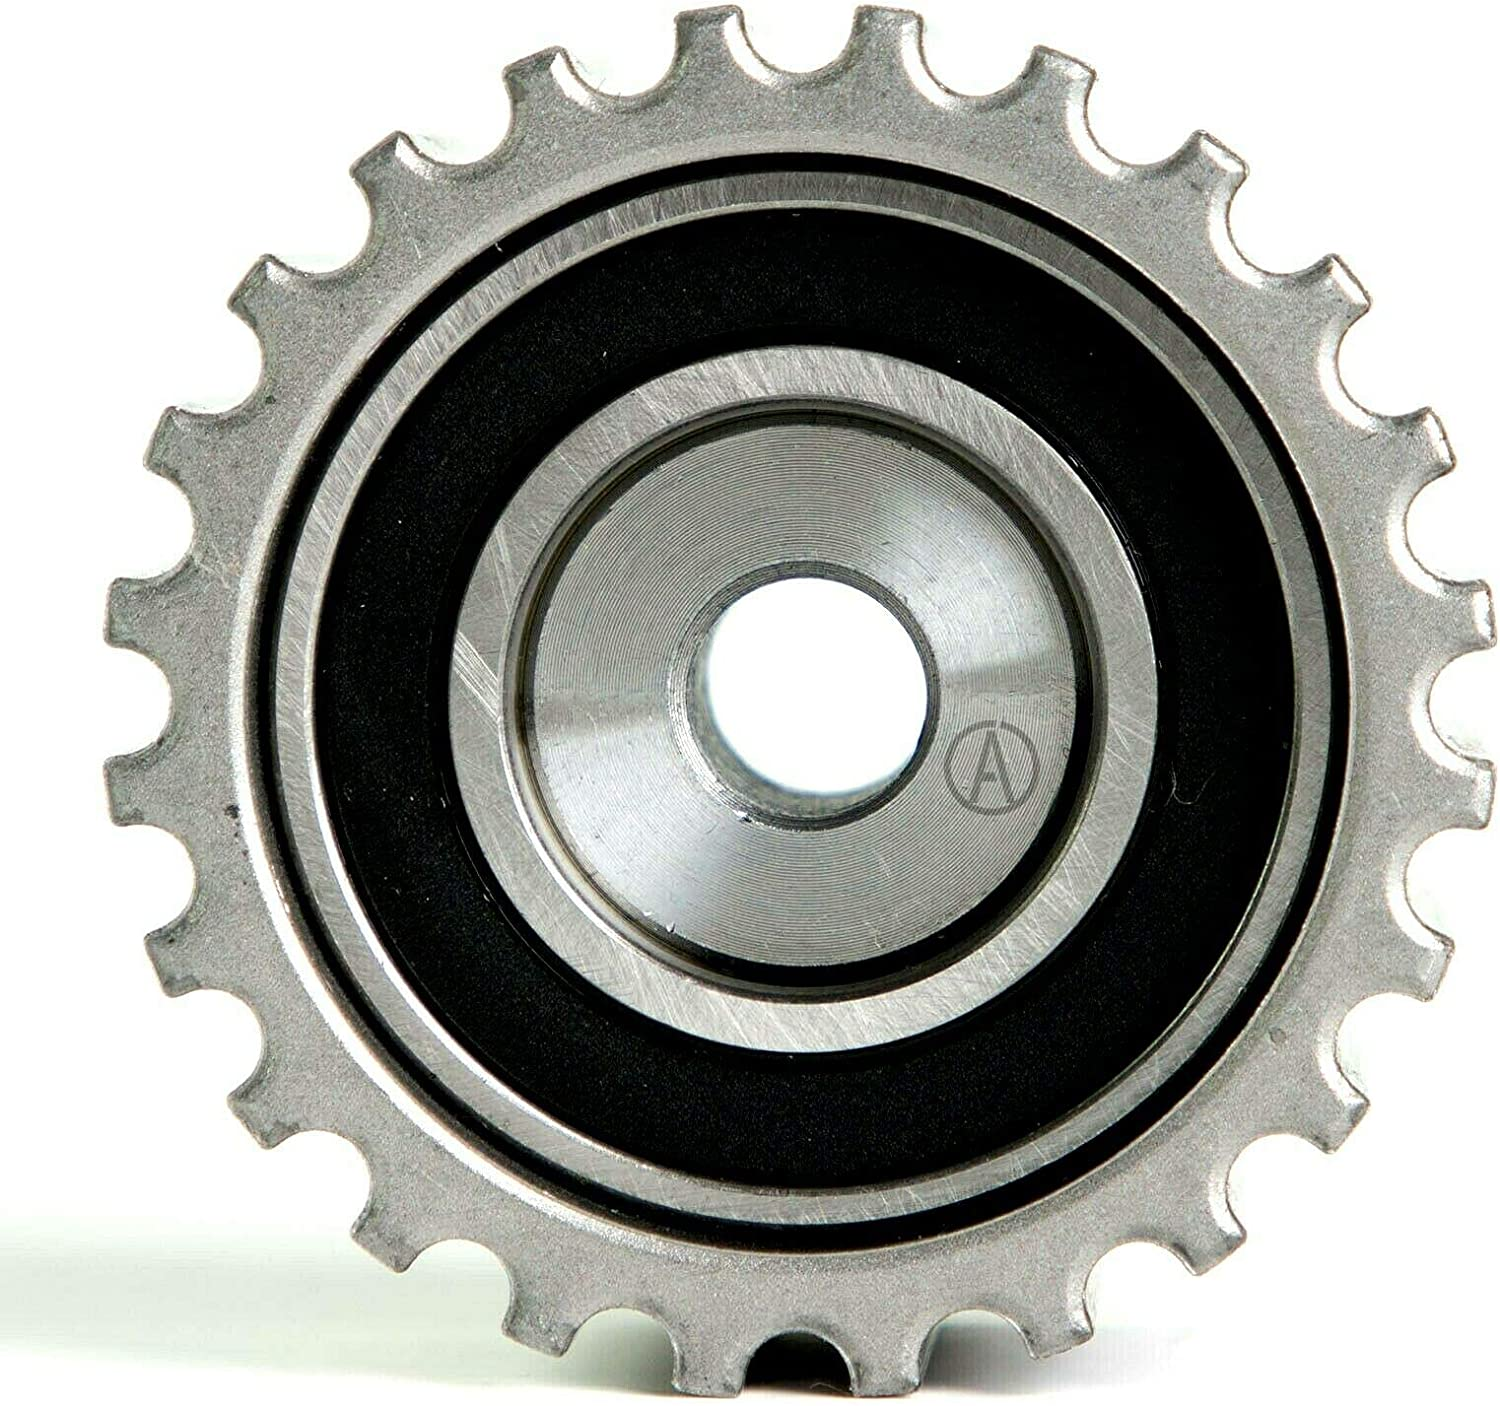 Bodeman Interchange #T42024 #ALT15018 Engine Timing Idler Pulley//Cam Idler Sprocket for Saab 9-2x Subaru Forester WRX